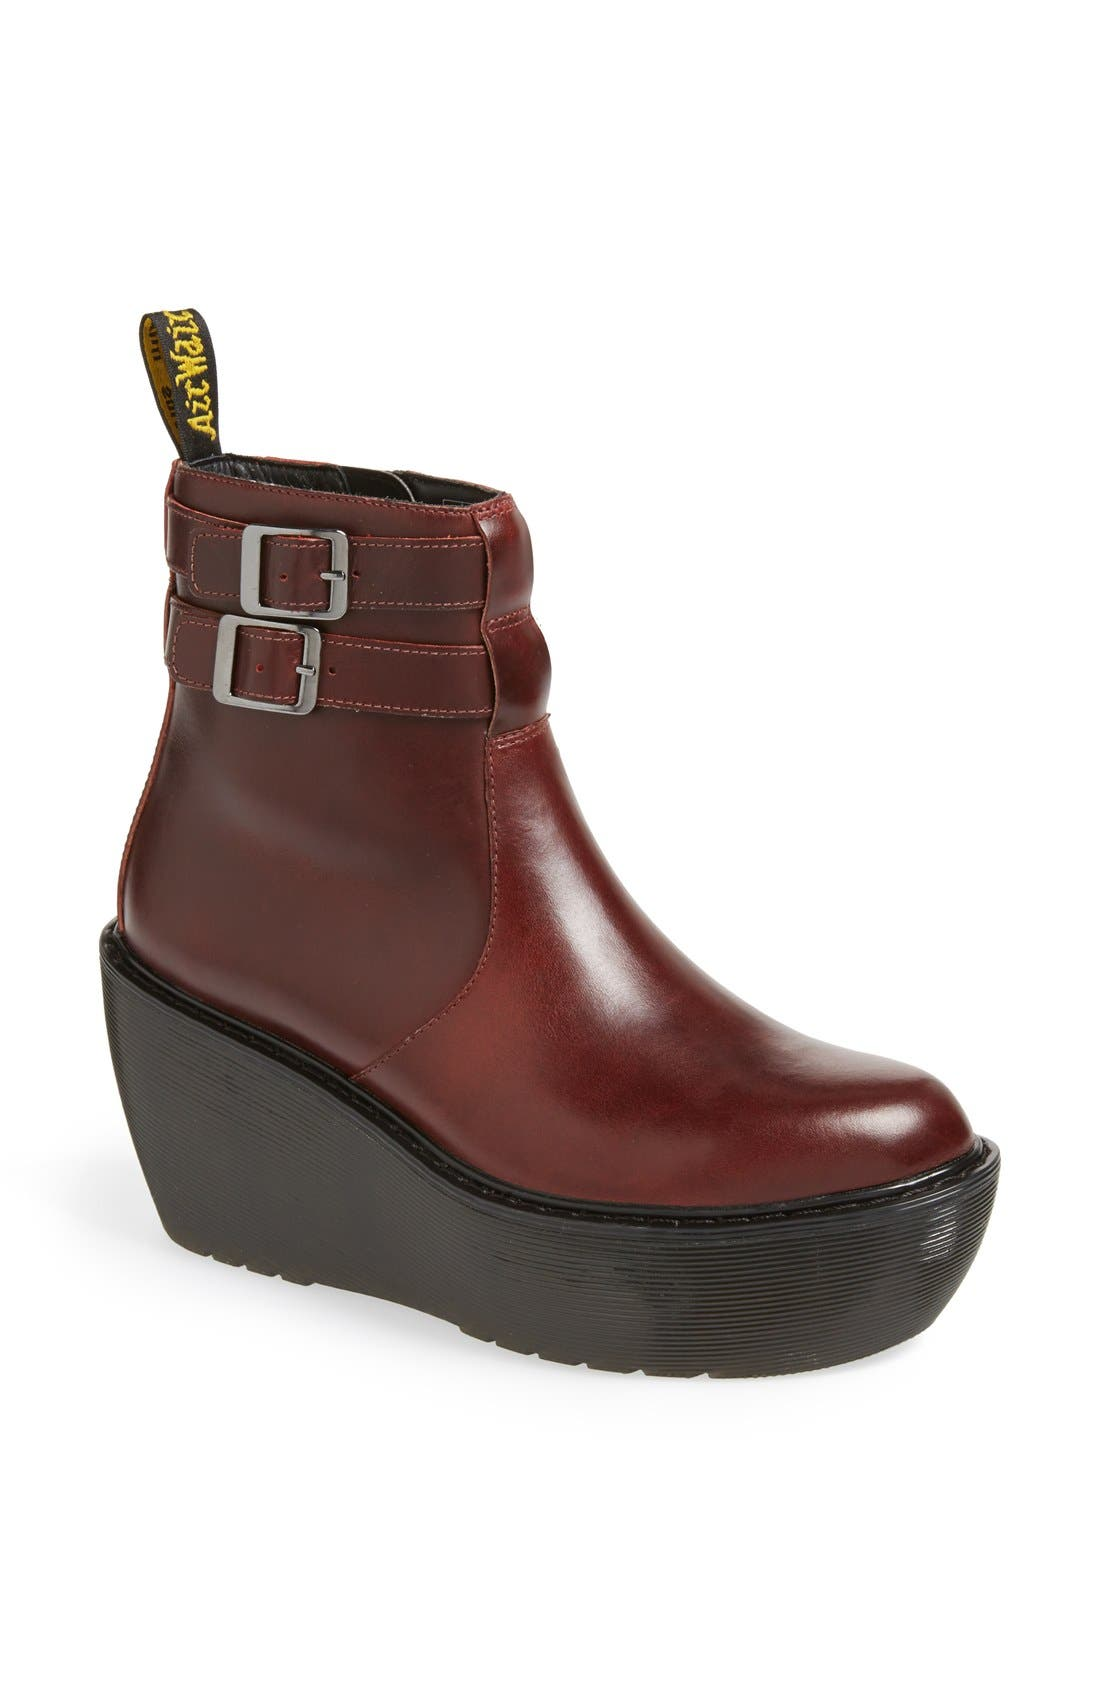 Alternate Image 1 Selected - Dr. Martens 'Caitlin' Two-Strap Ankle Boot